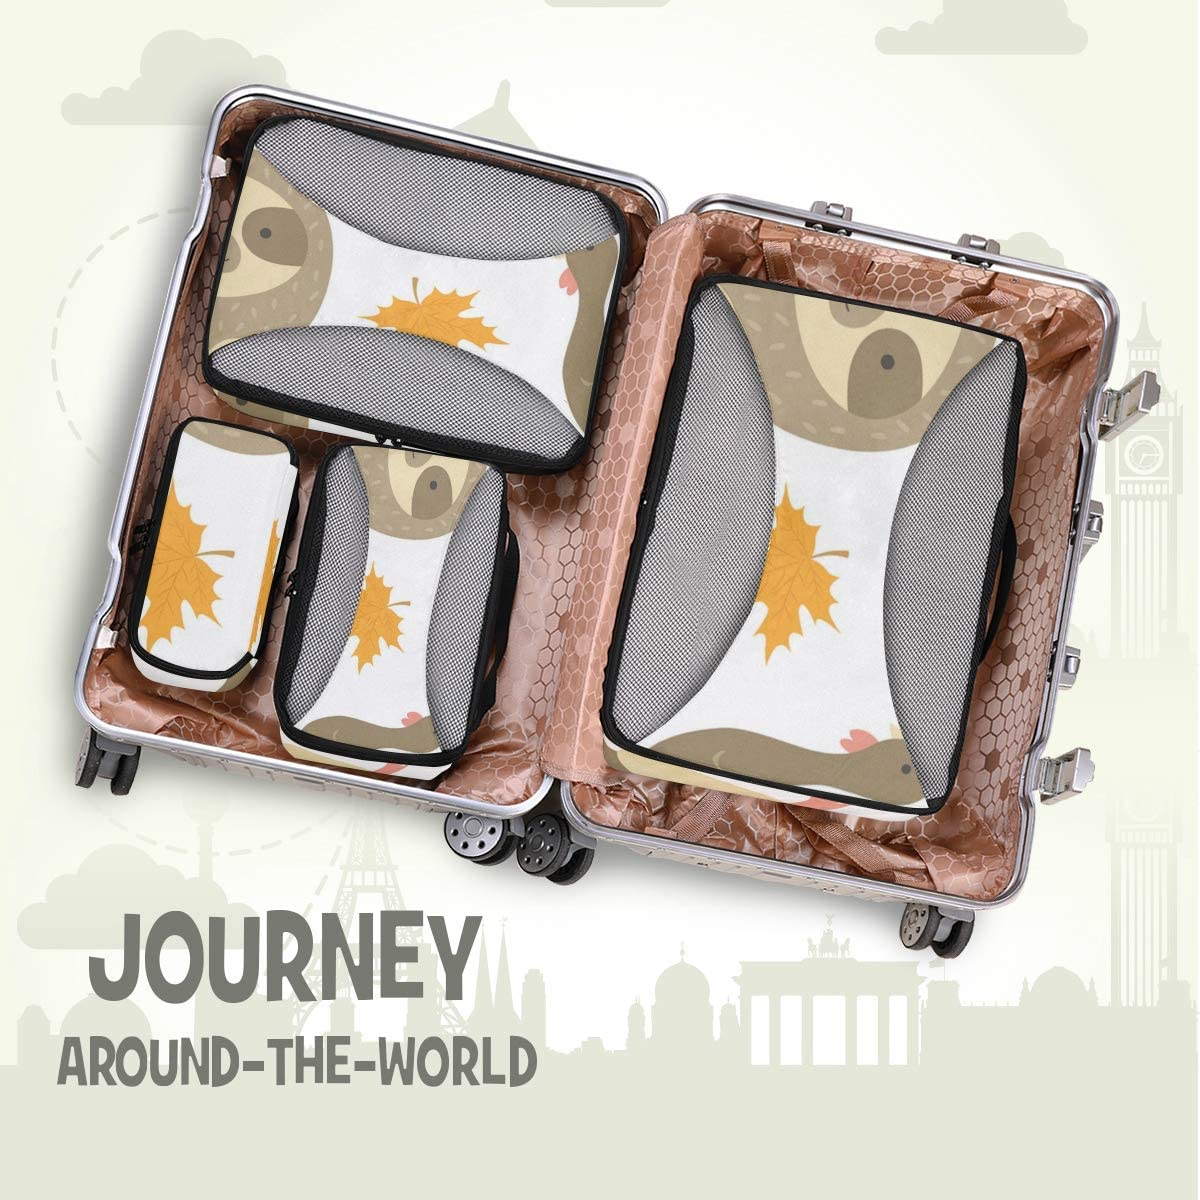 4 Set Packing Cubes Travel Luggage Packing Organizers Thanksgiving With Cute Sloth And Turkey